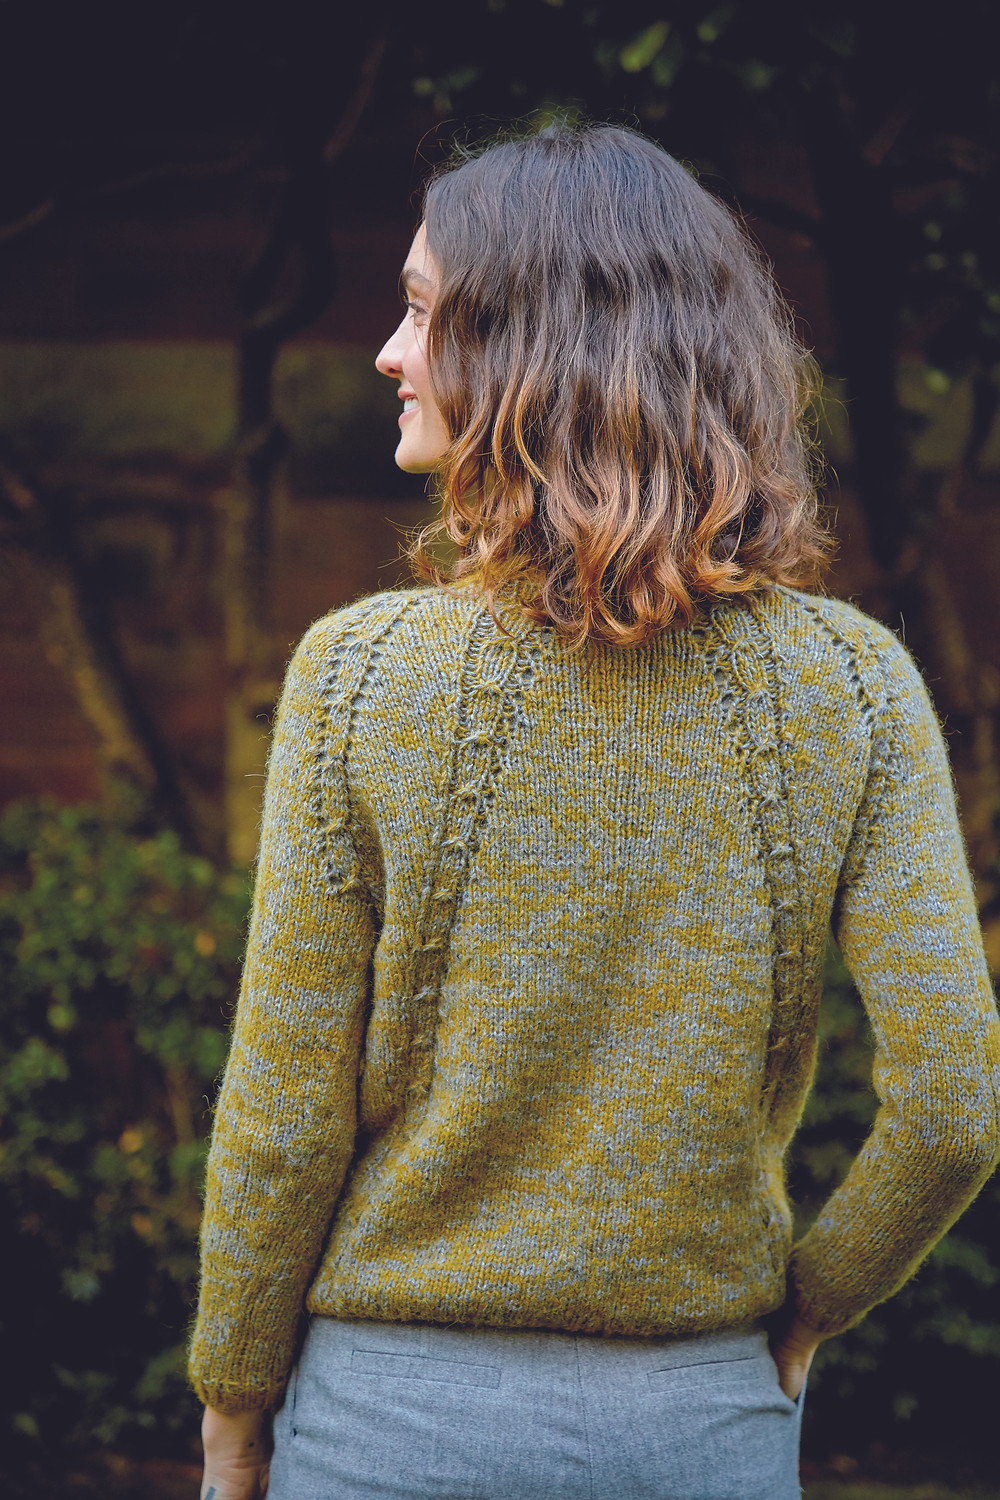 Hamilton is a seamless sweater using Alpaca Classic & Felted Tweed yarns held together.